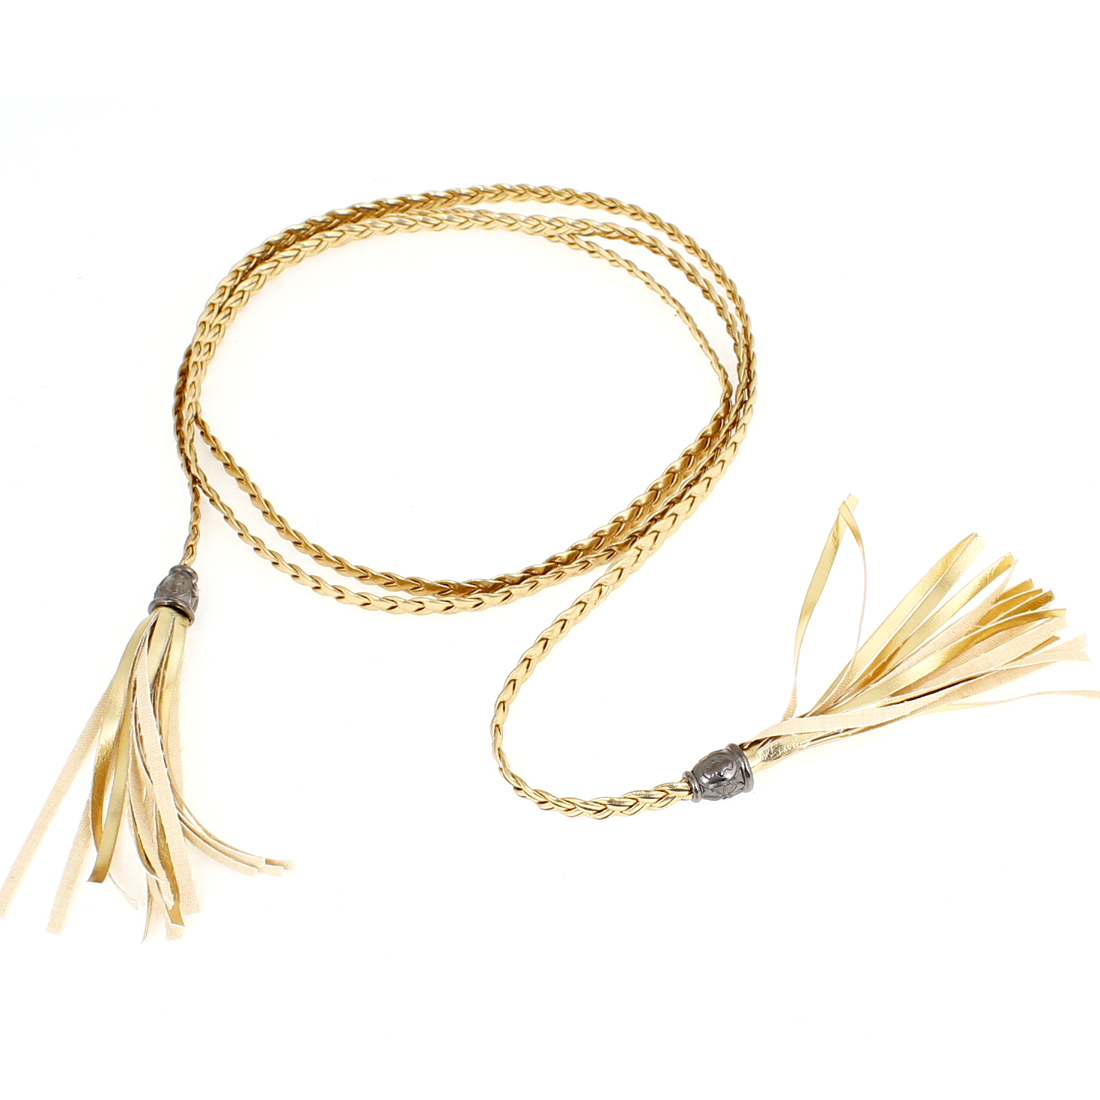 Lady Tassel Detailing Beads Accent Faux Leather Waist Belt Gold Tone